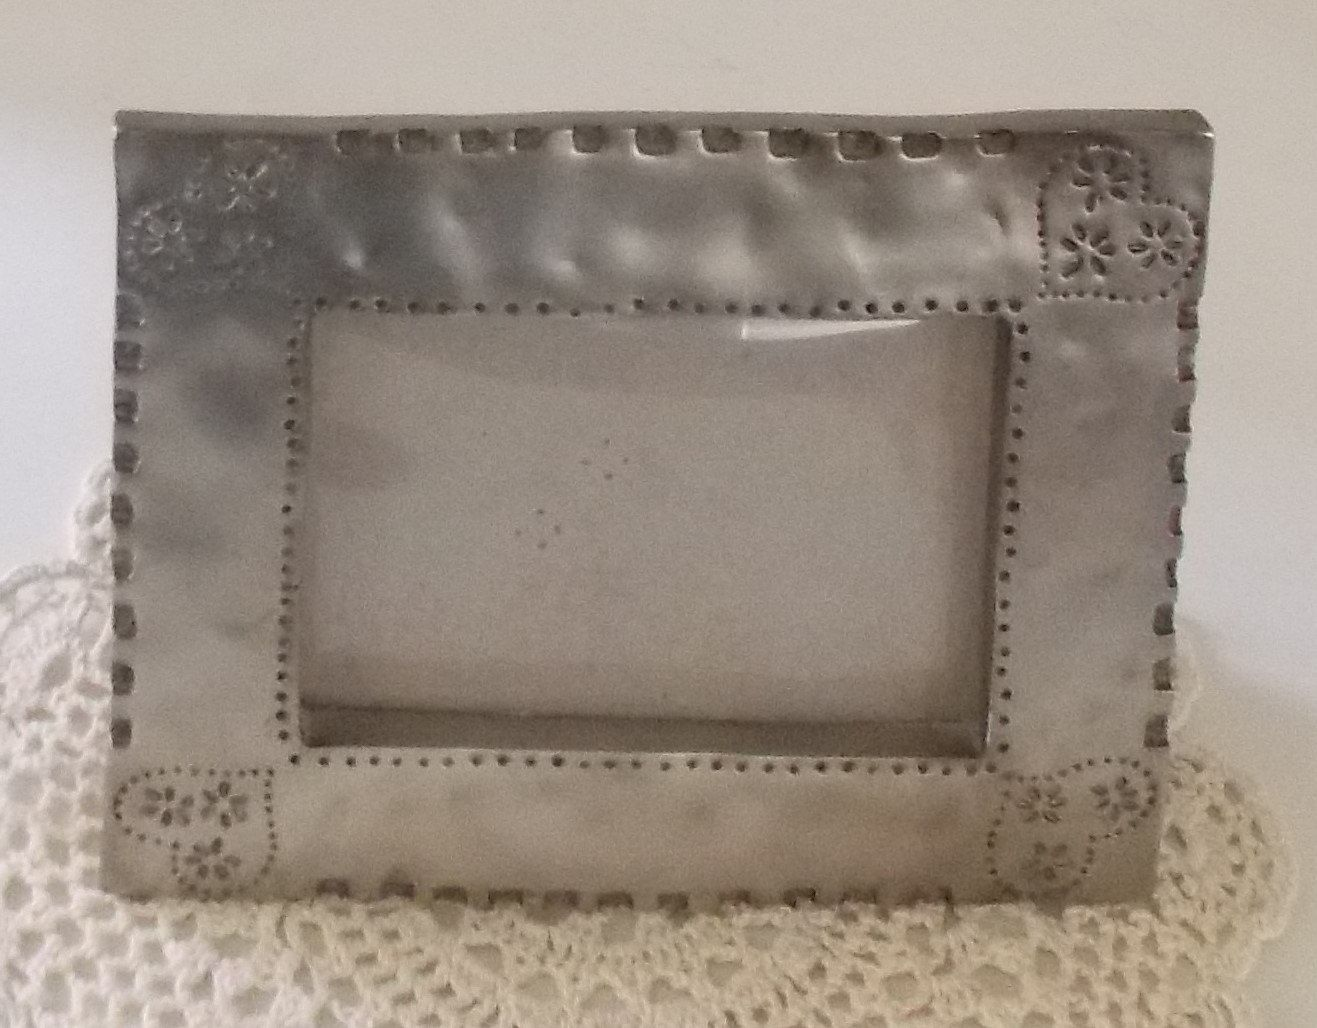 vintage silver photo frame 3 12 x 5 metal frame